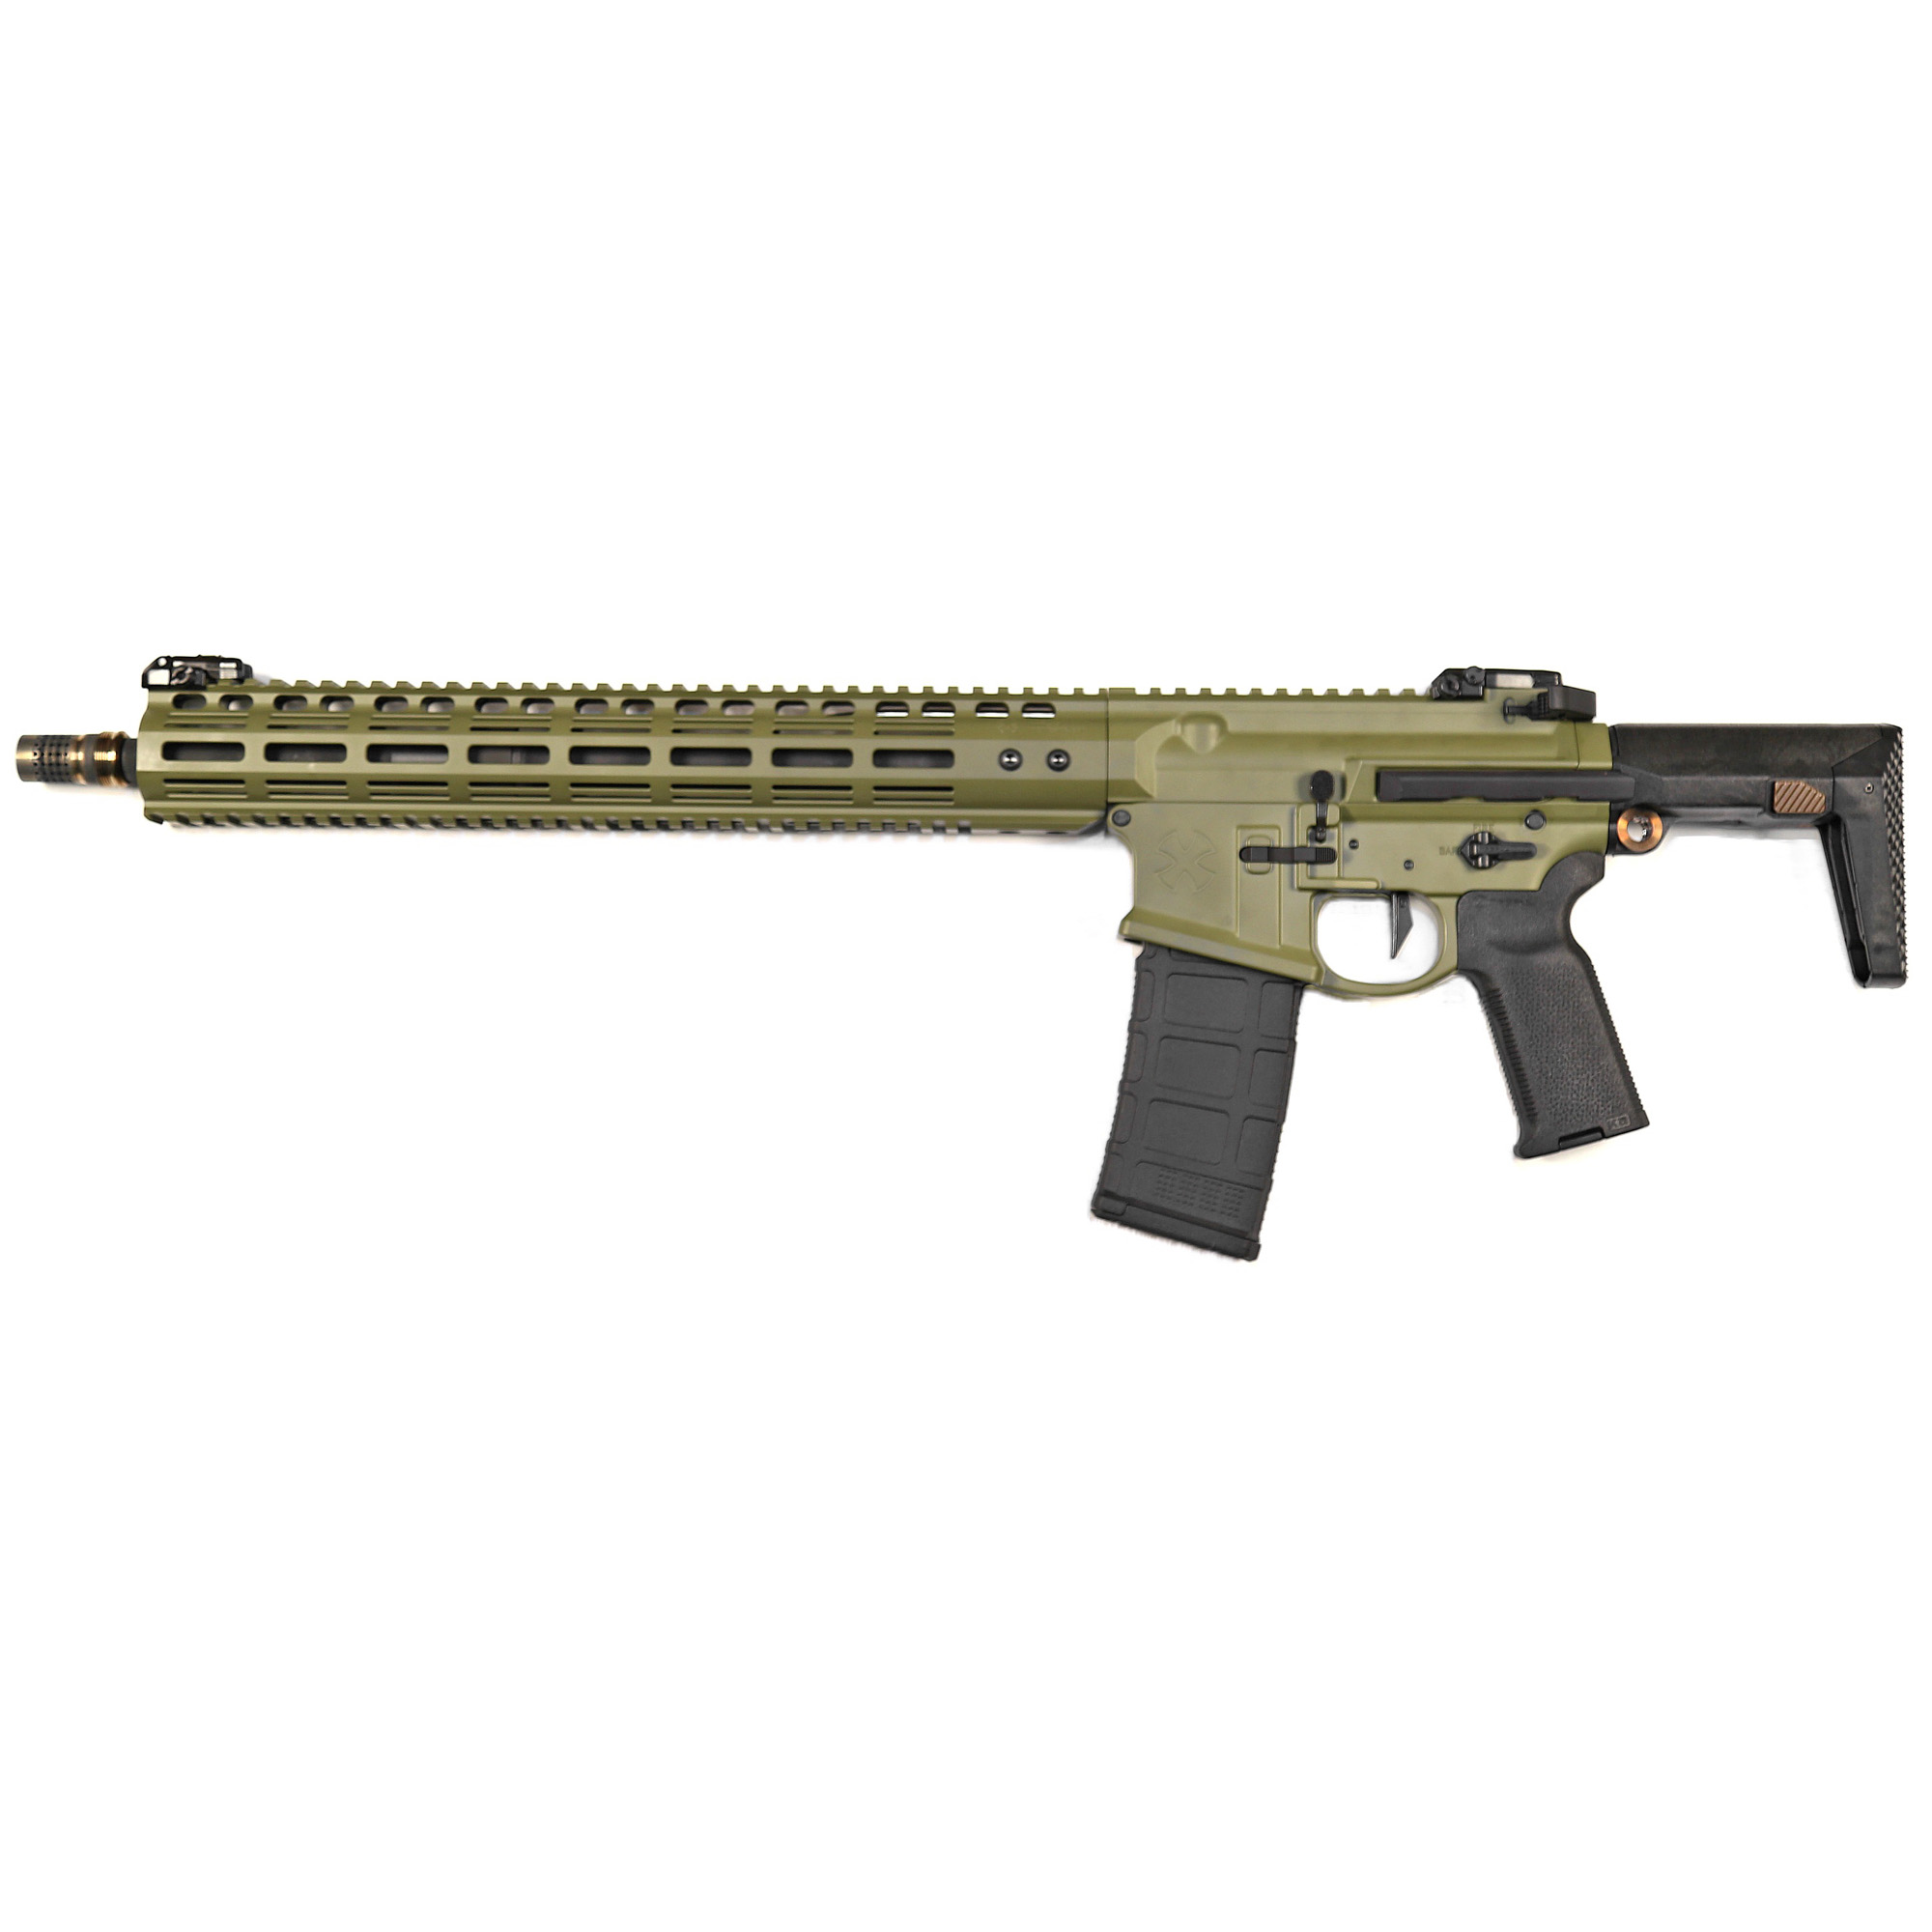 This rifle features a Gen 4 precision machined billet upper receiver with extended feed ramp and anti-rotation interface with the handguard. The Gen 4 lower has ambidextrous controls and a Geissele SD-E trigger.